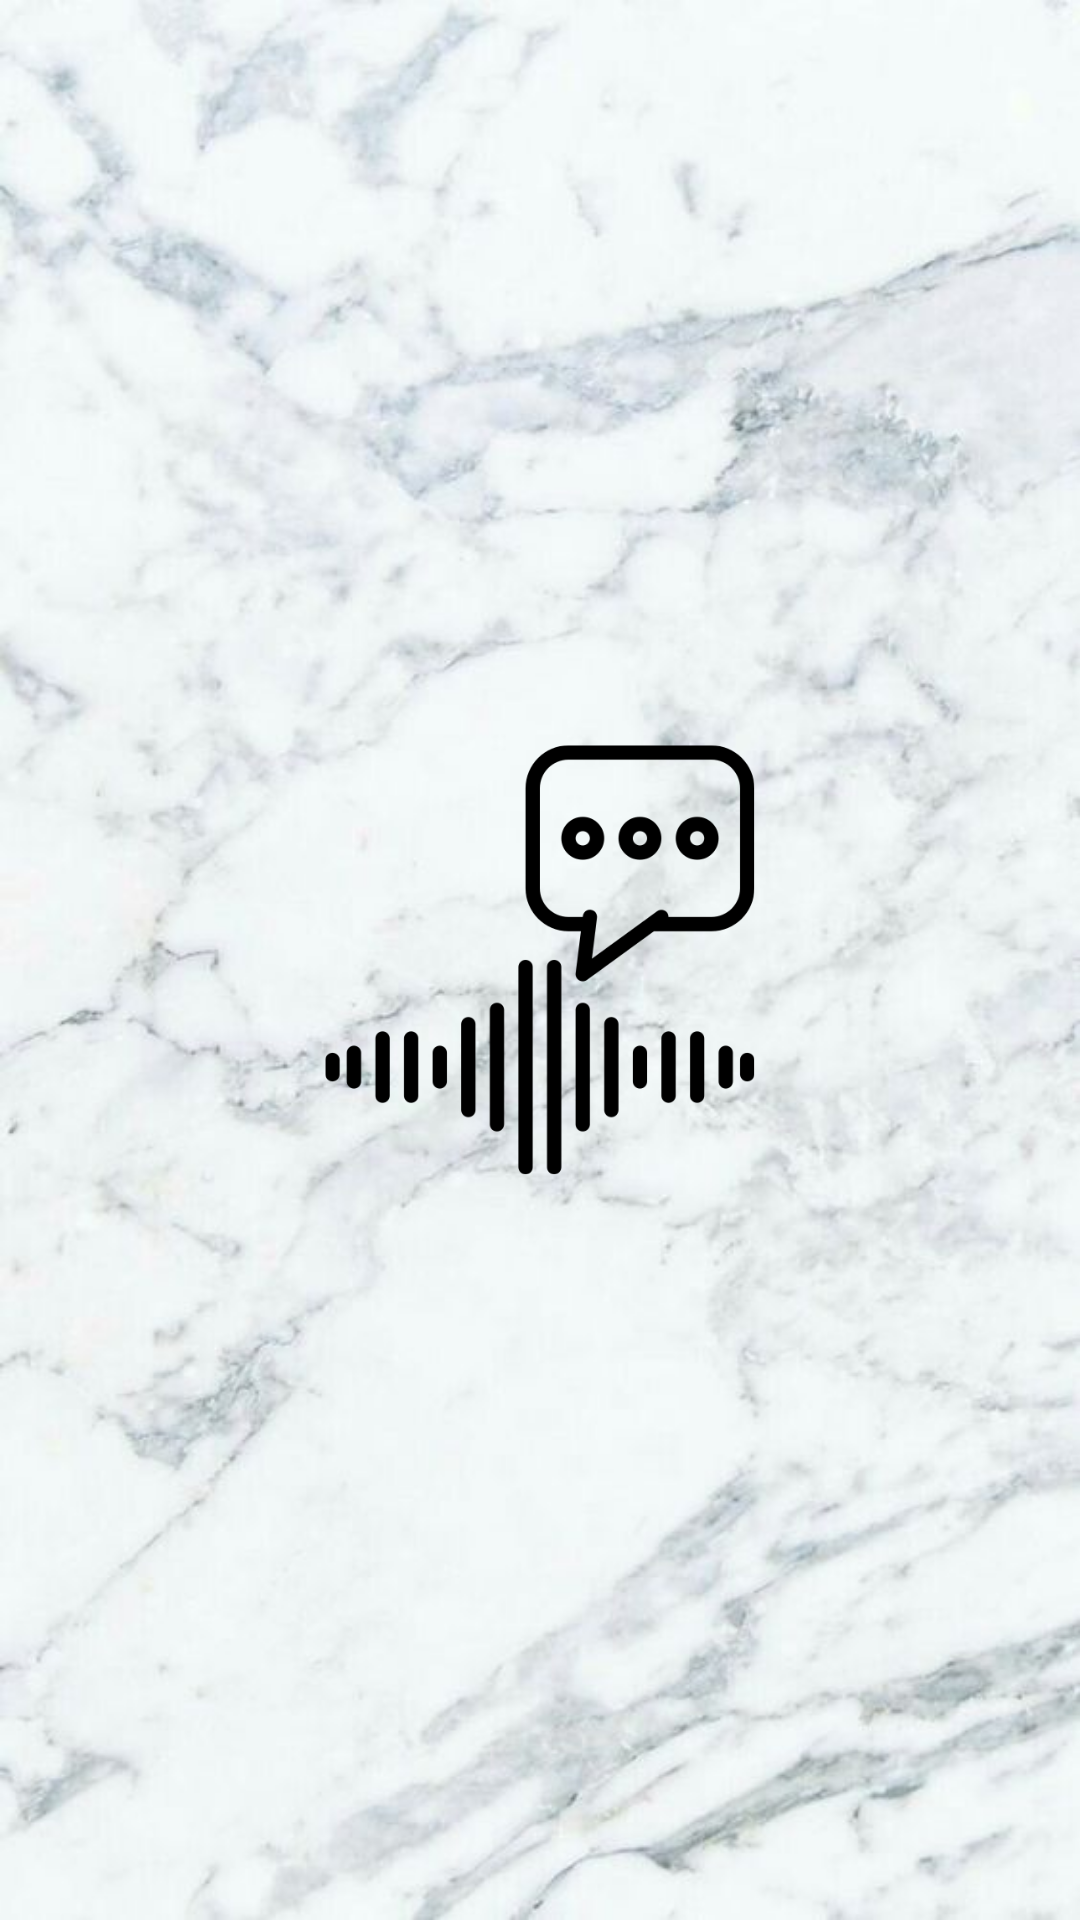 Pin By Shaaa On Instagram Icons In 2020 Instagram Highlight Icons Instagram Logo Instagram Icons